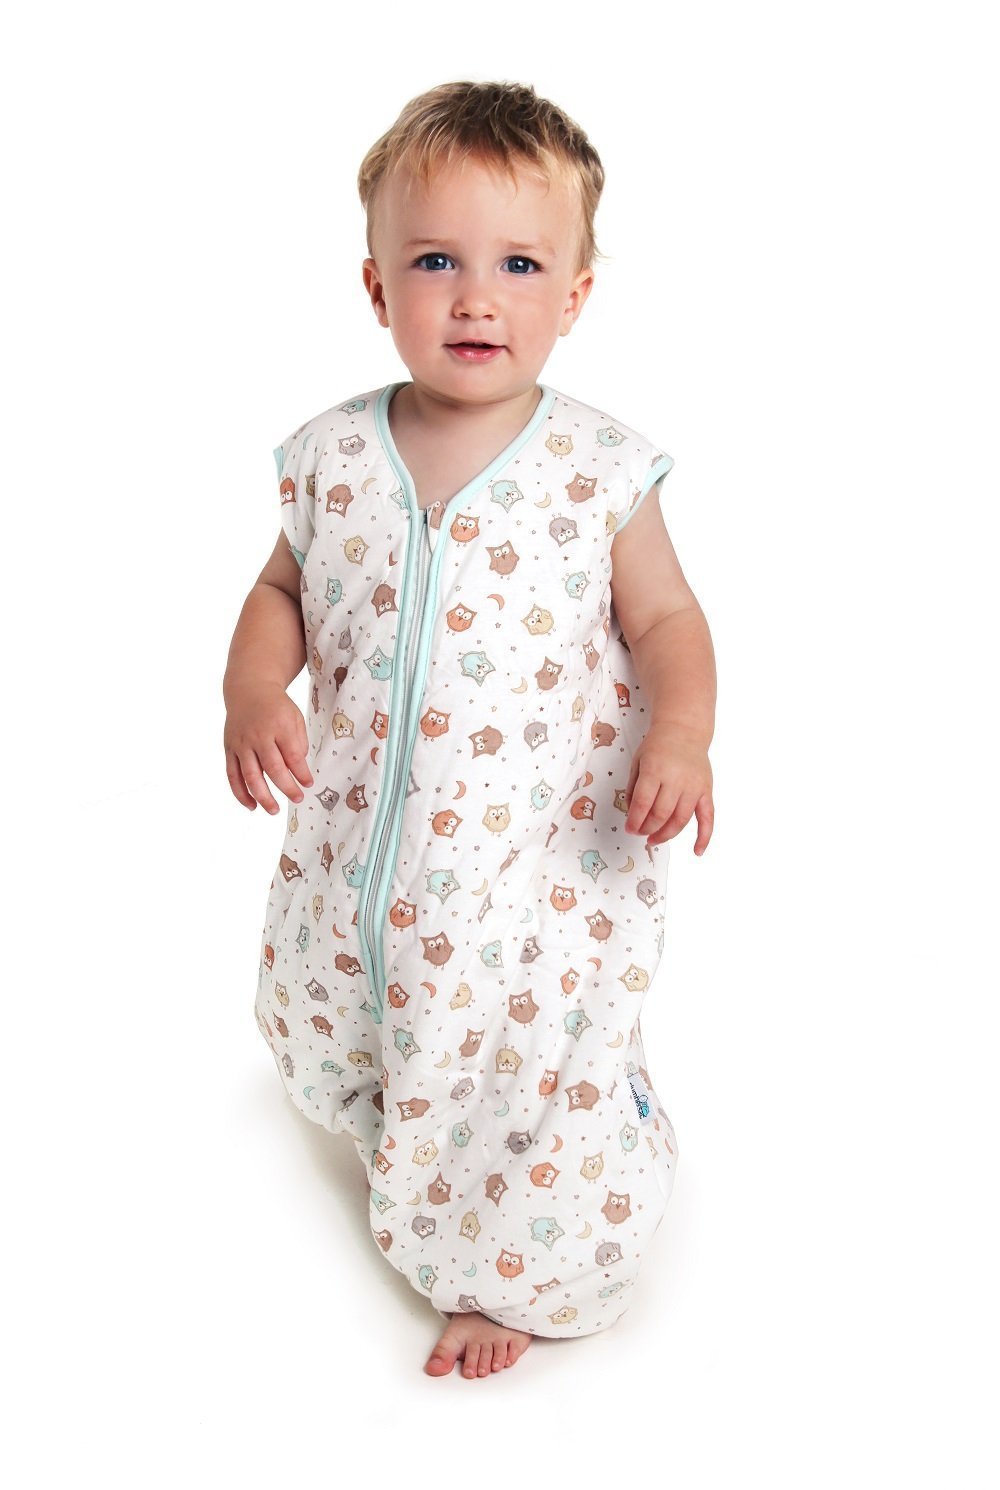 Slumbersafe Sleeping Bag With Feet 2.5 Tog Simply Owl 18-24 months UK652-25